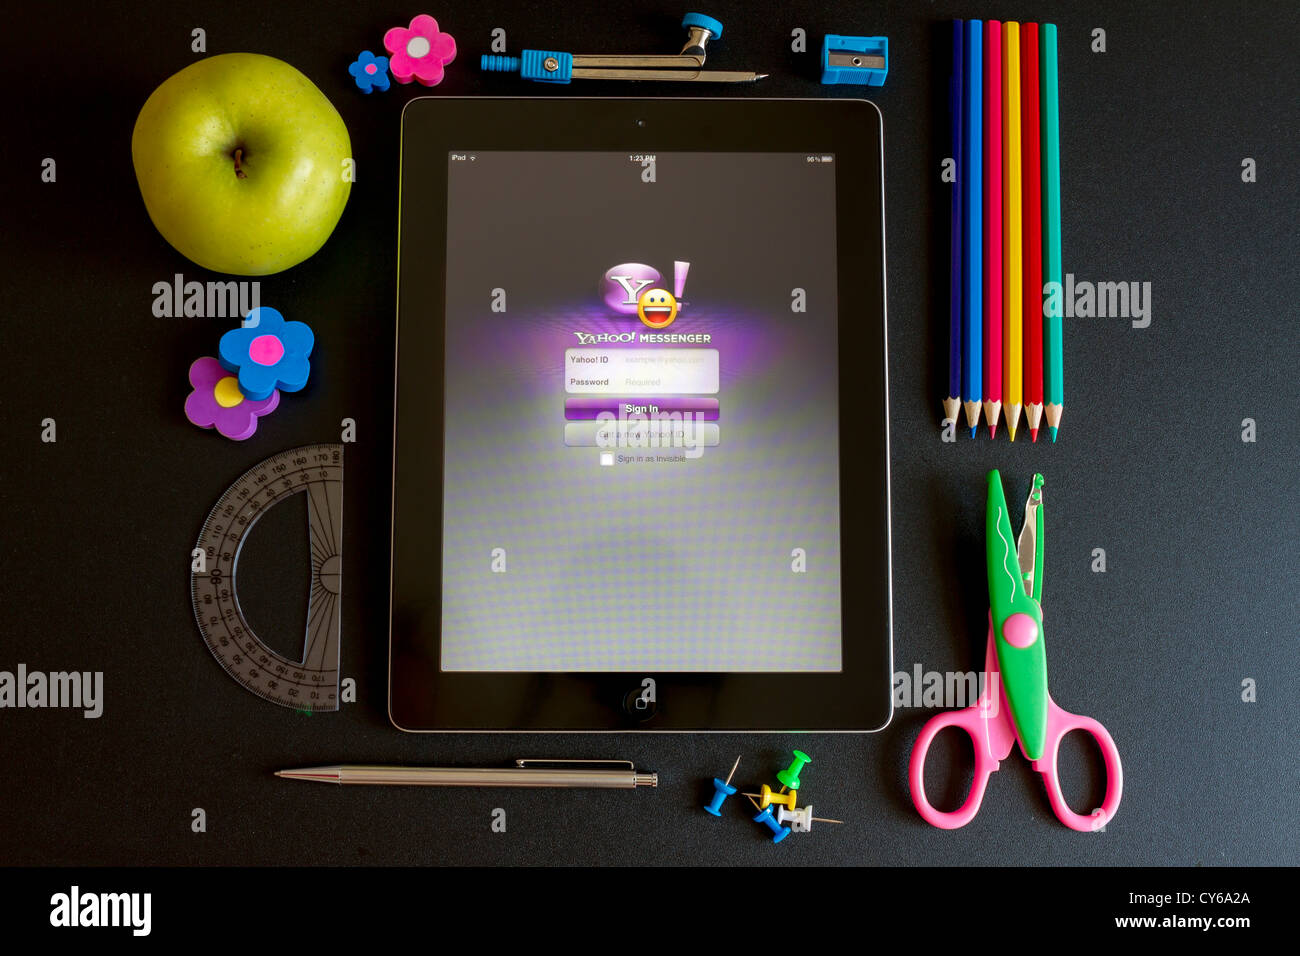 Ipad 3 with school accesories and yahoo messenger on the screen - Stock Image